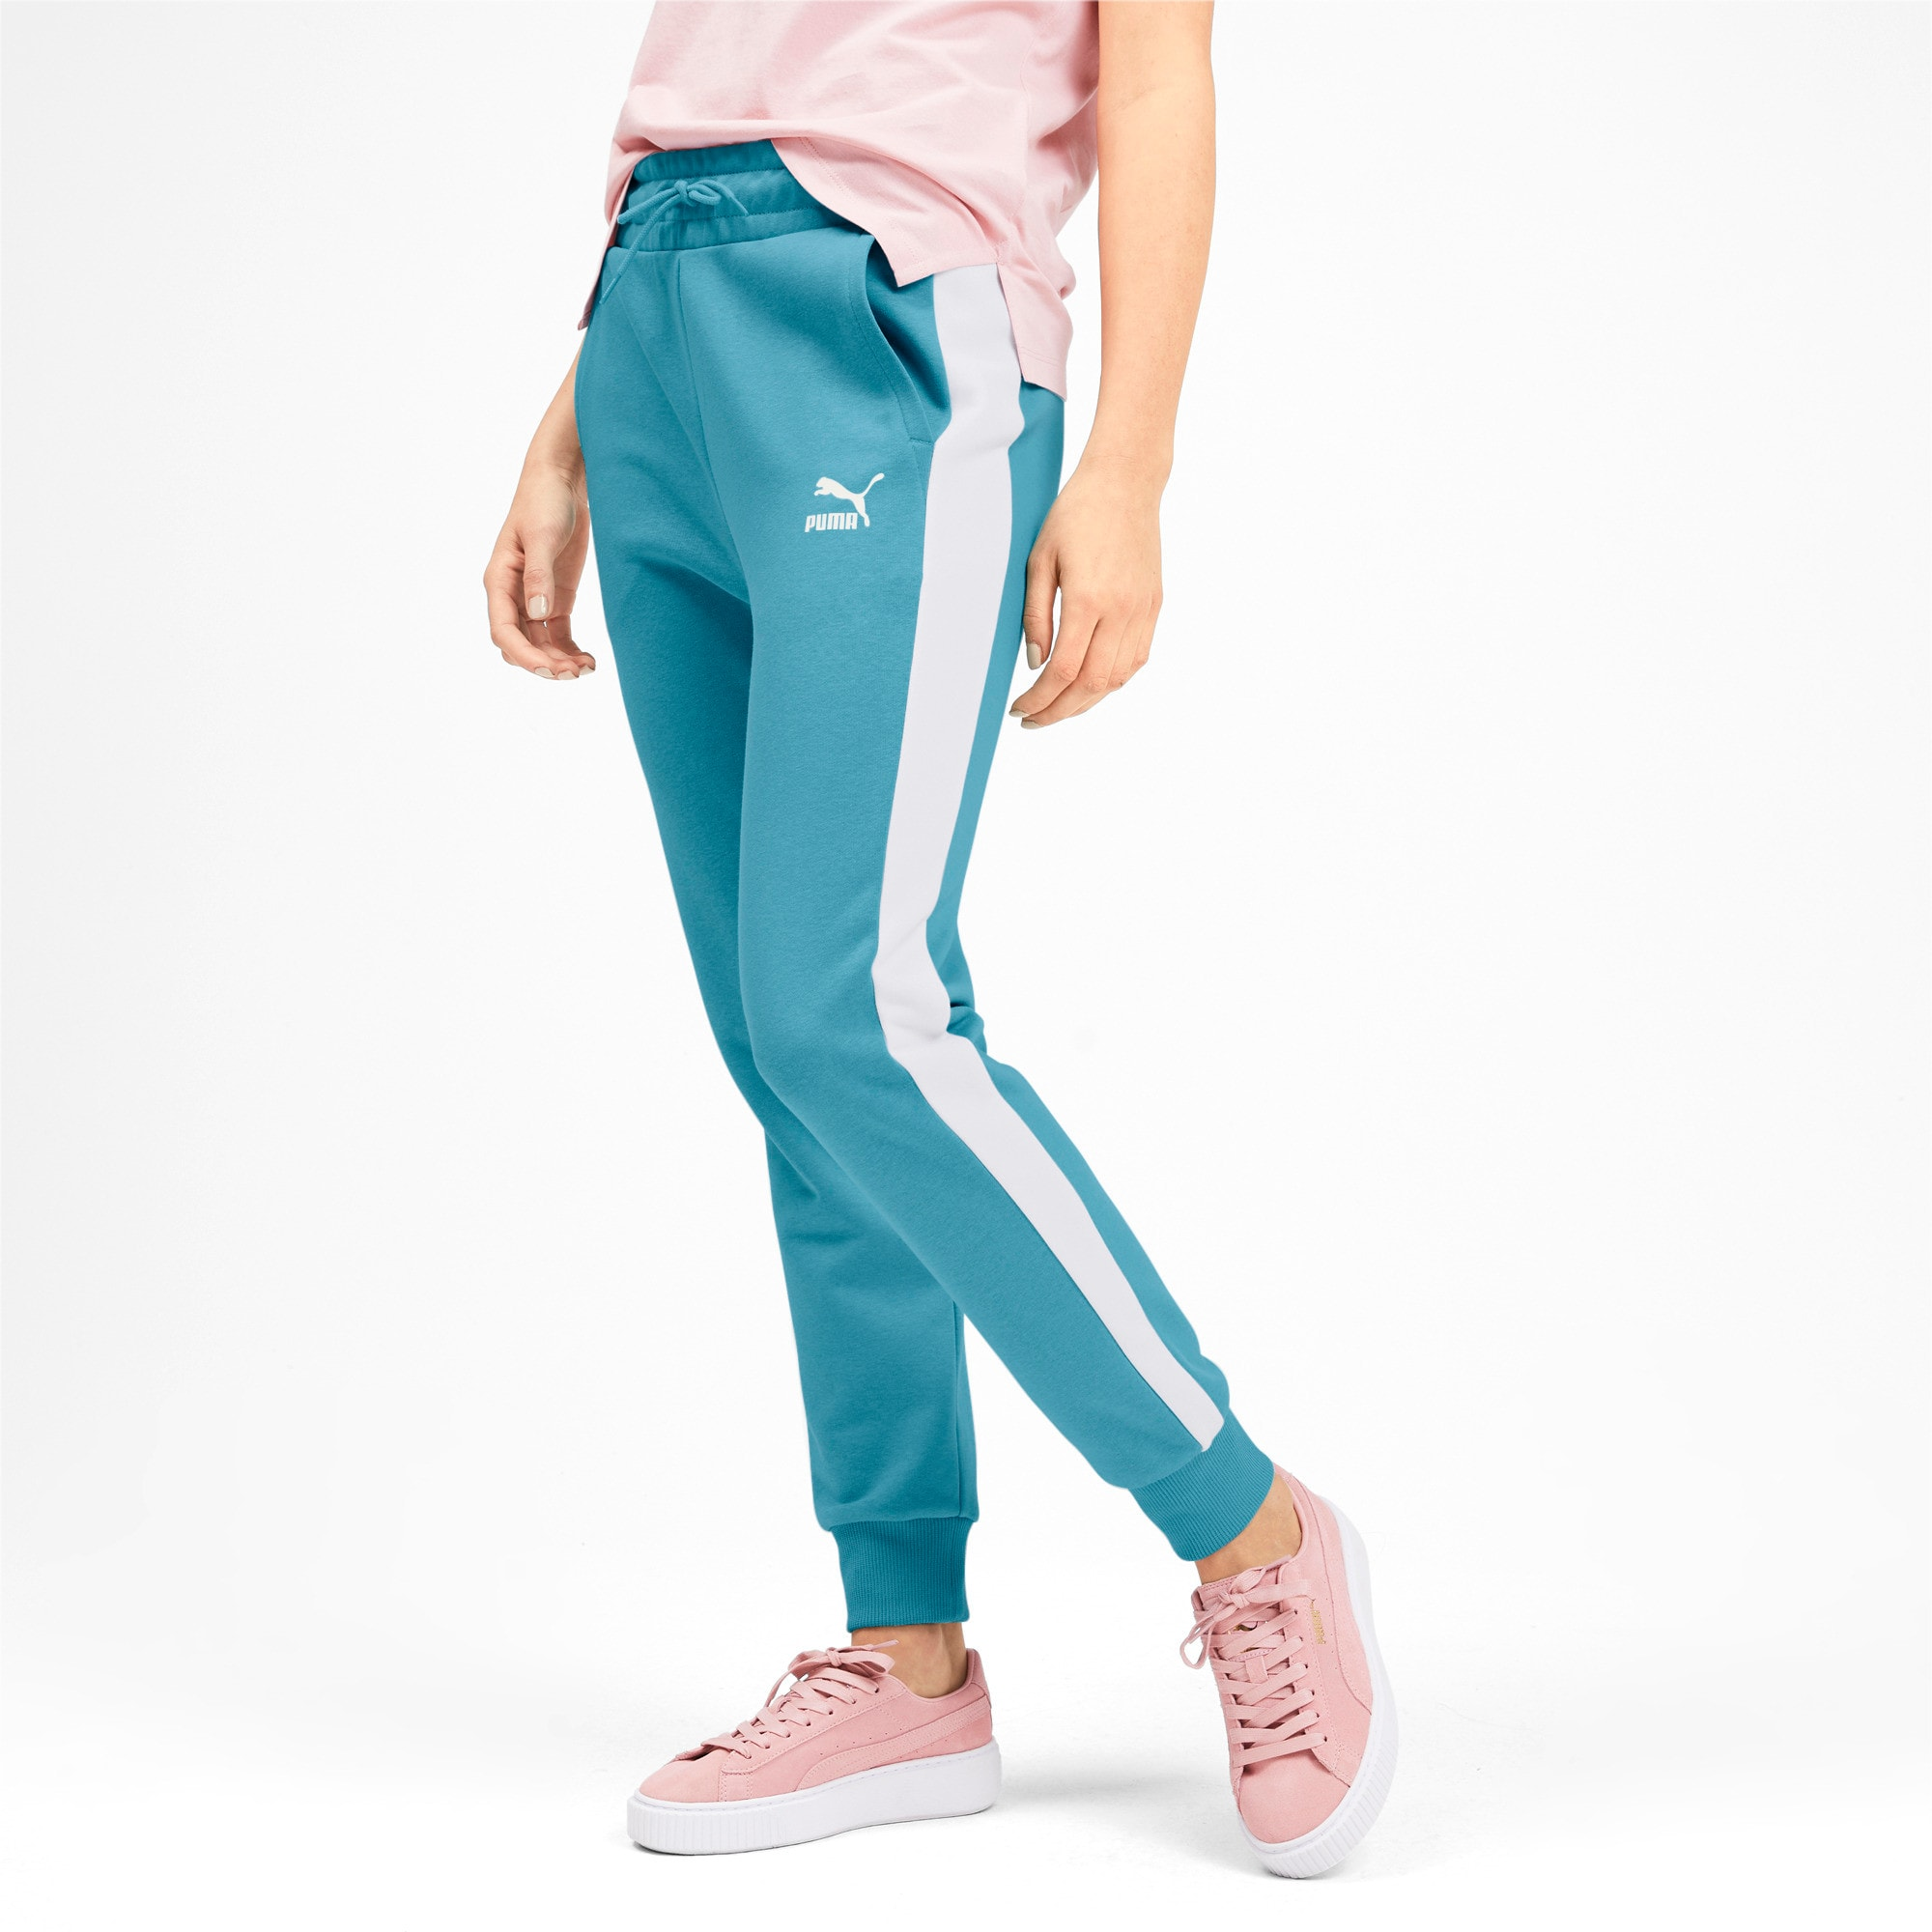 Thumbnail 2 of Gebreide Classics T7 trainingsbroek voor dames, Milky Blue, medium